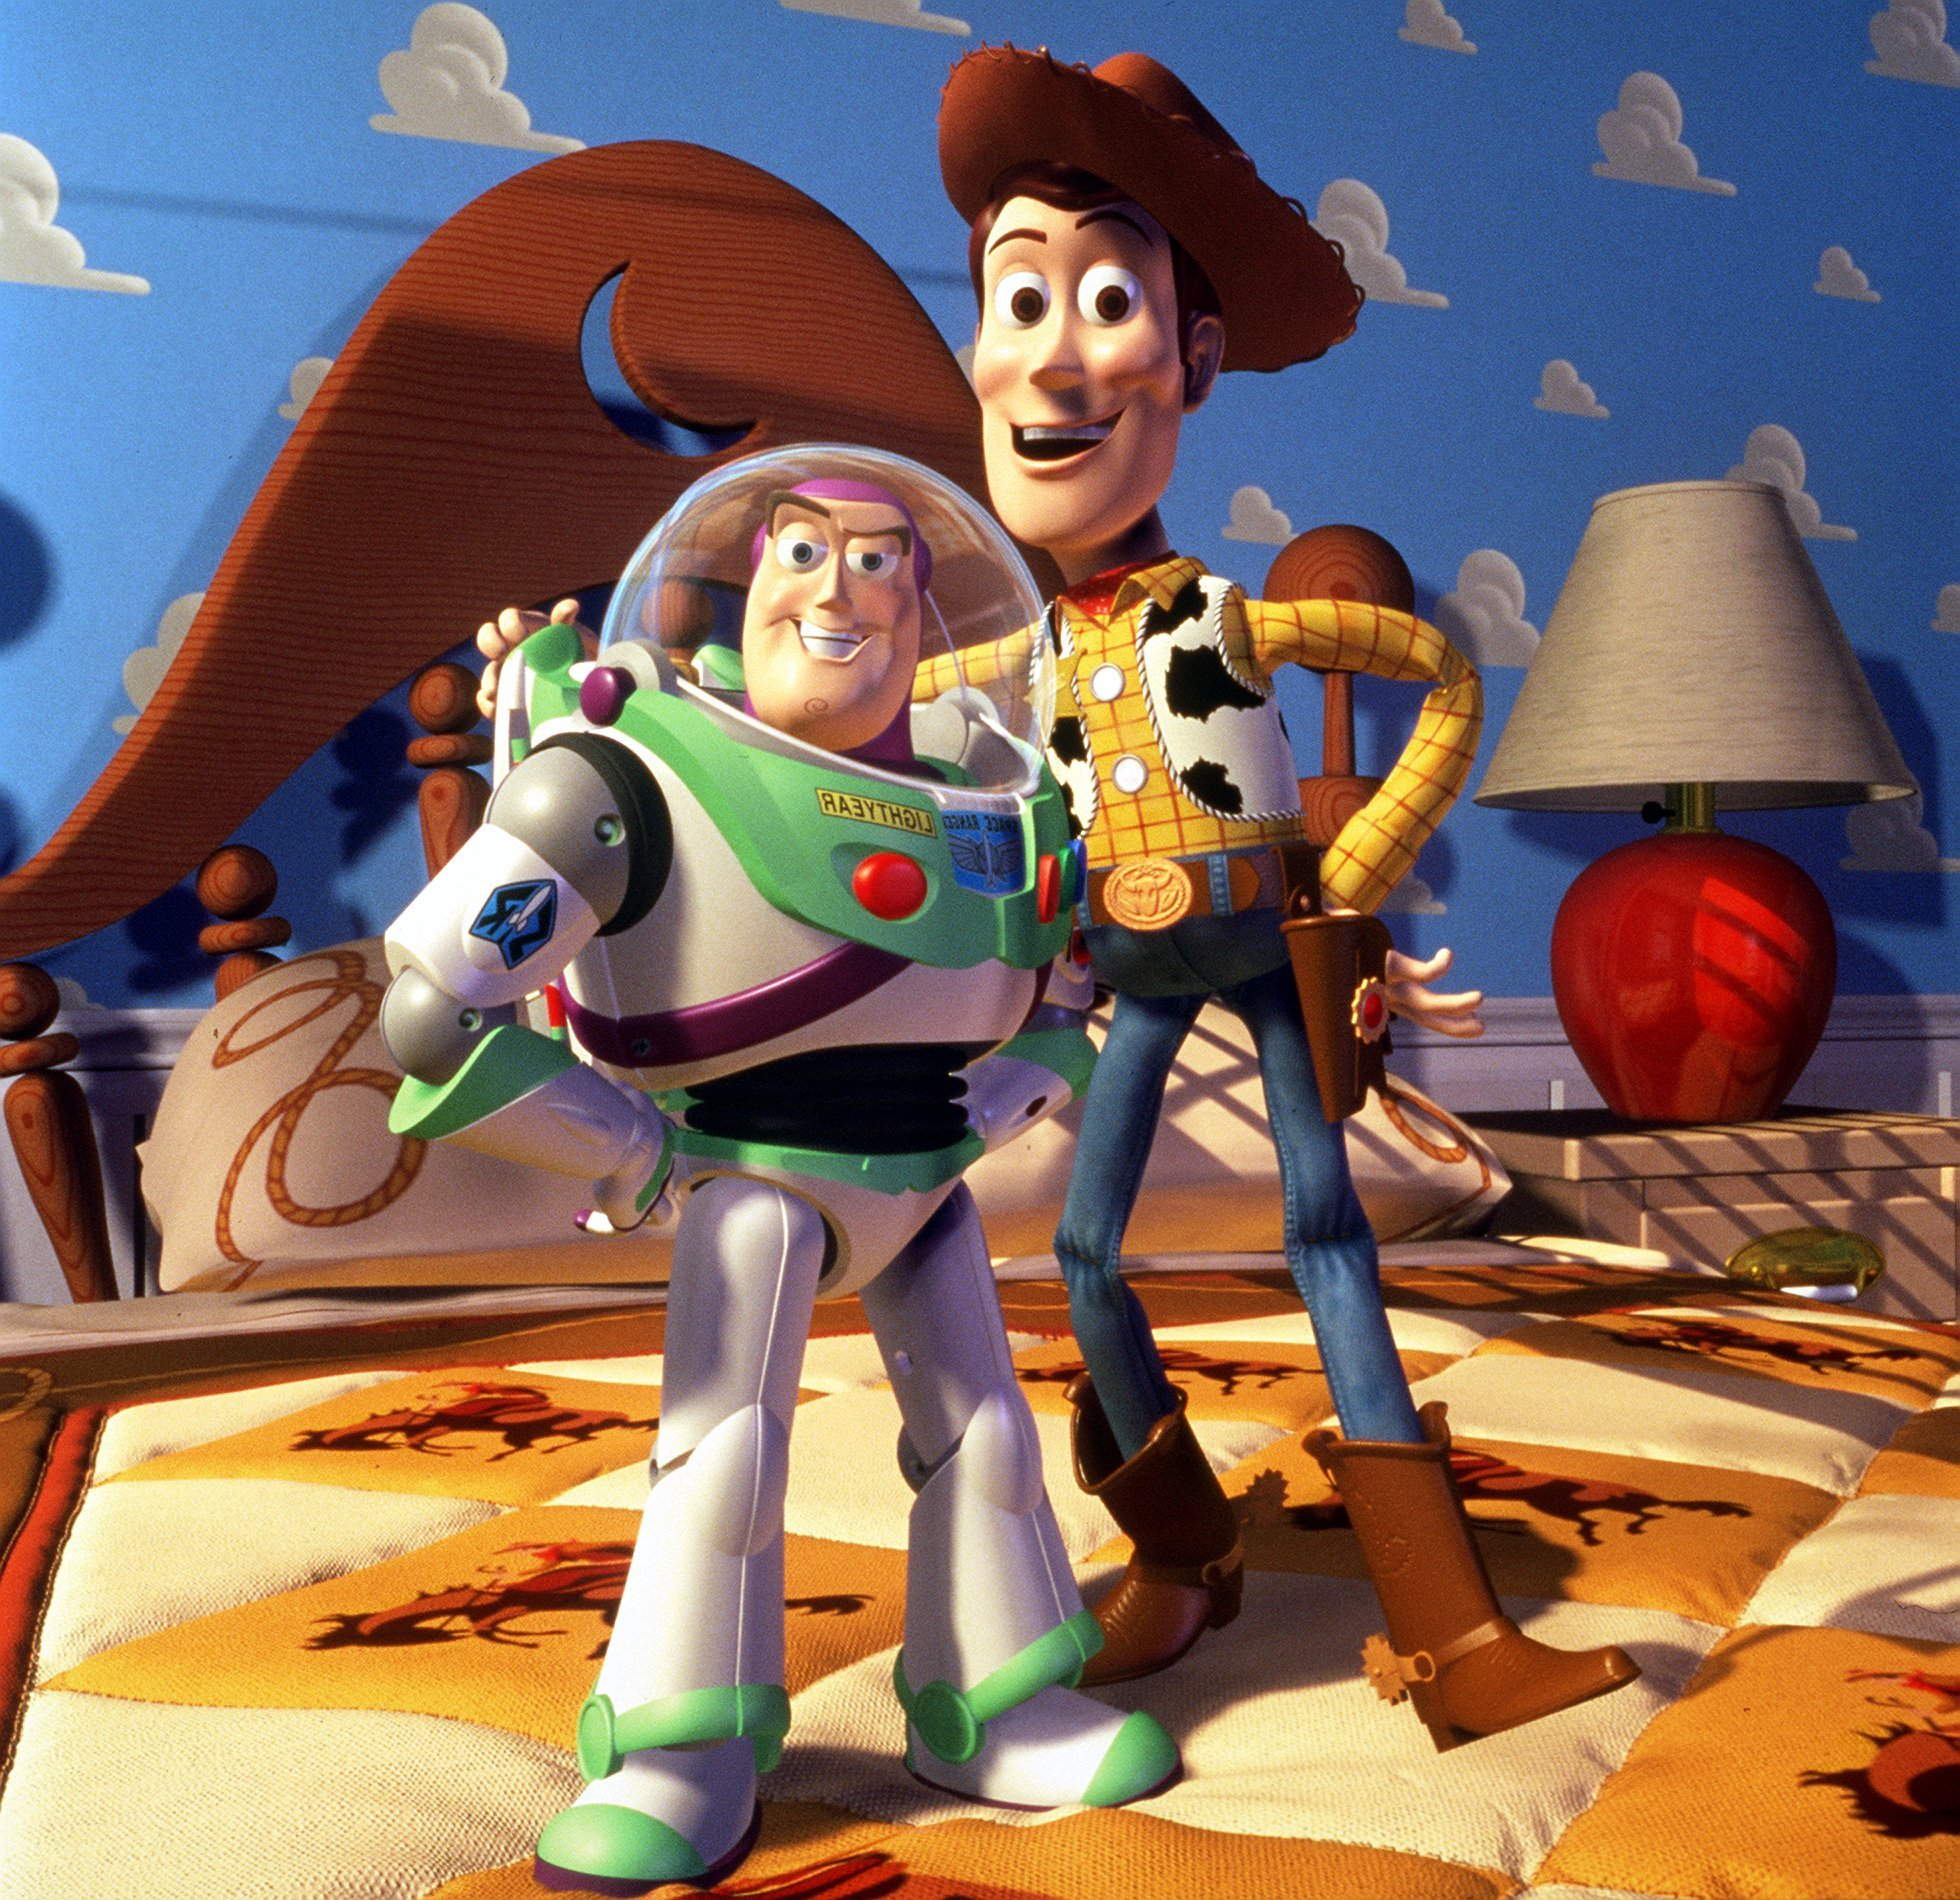 Woody and Buzz, Toy Story